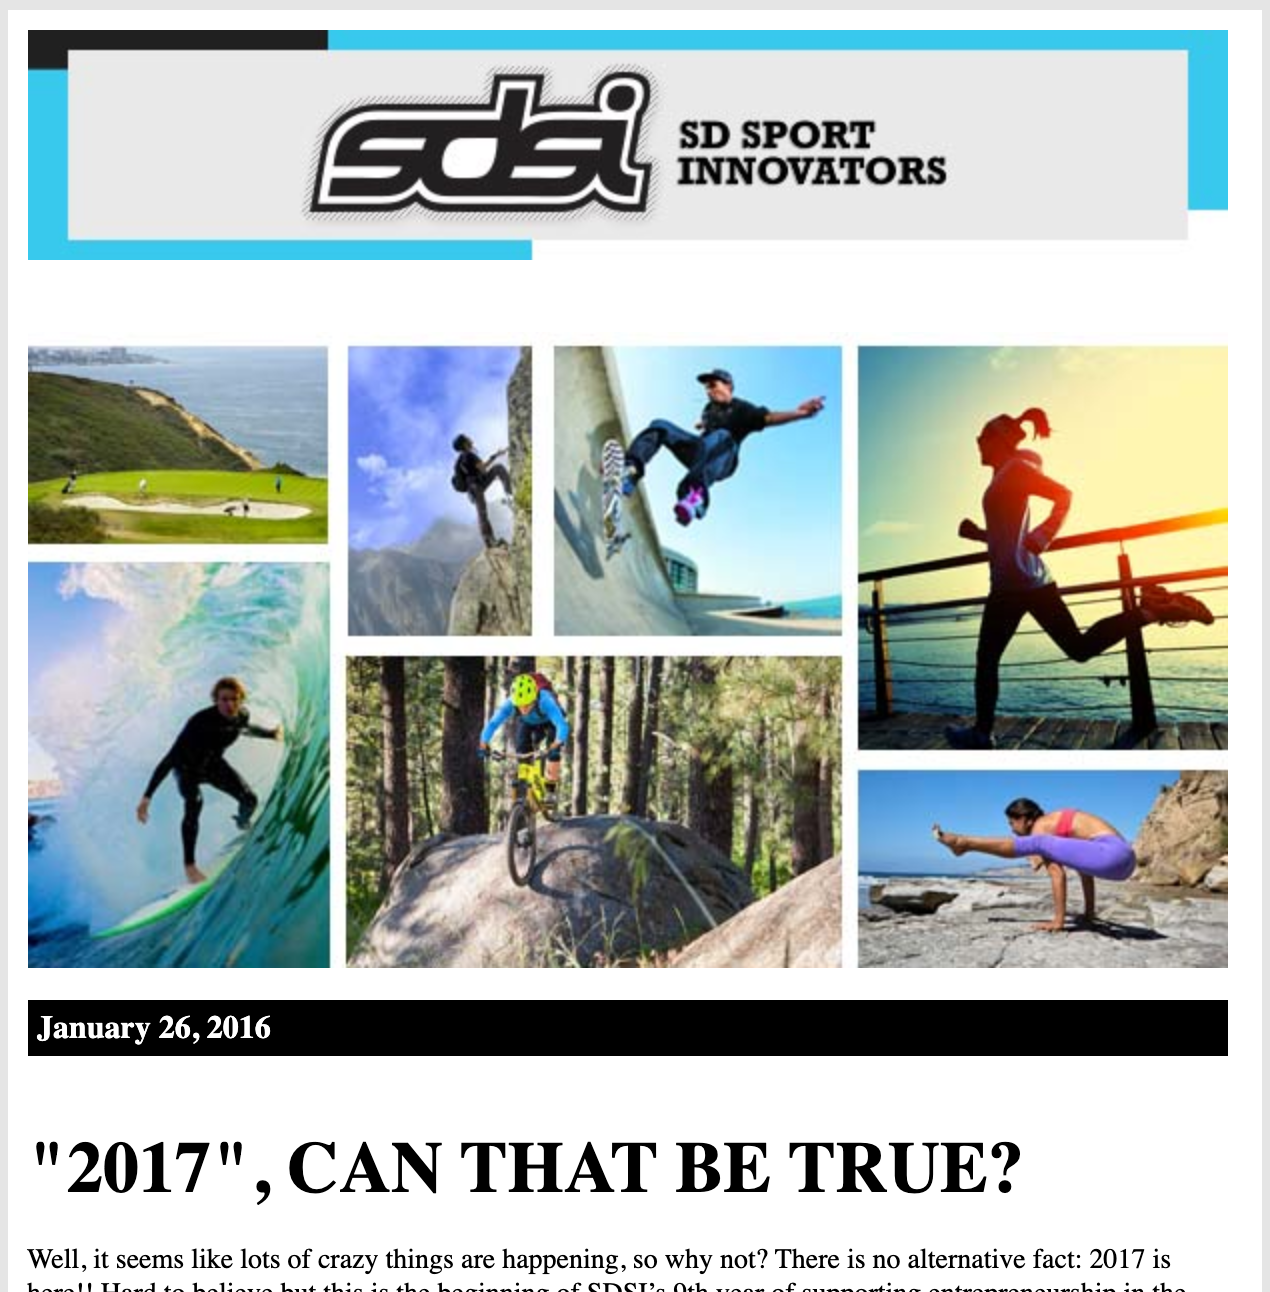 SAN DIEGO SPORTS INNOVATORS, JANUARY 26, 2017: SDSI Springboard graduates four companies from Class 8